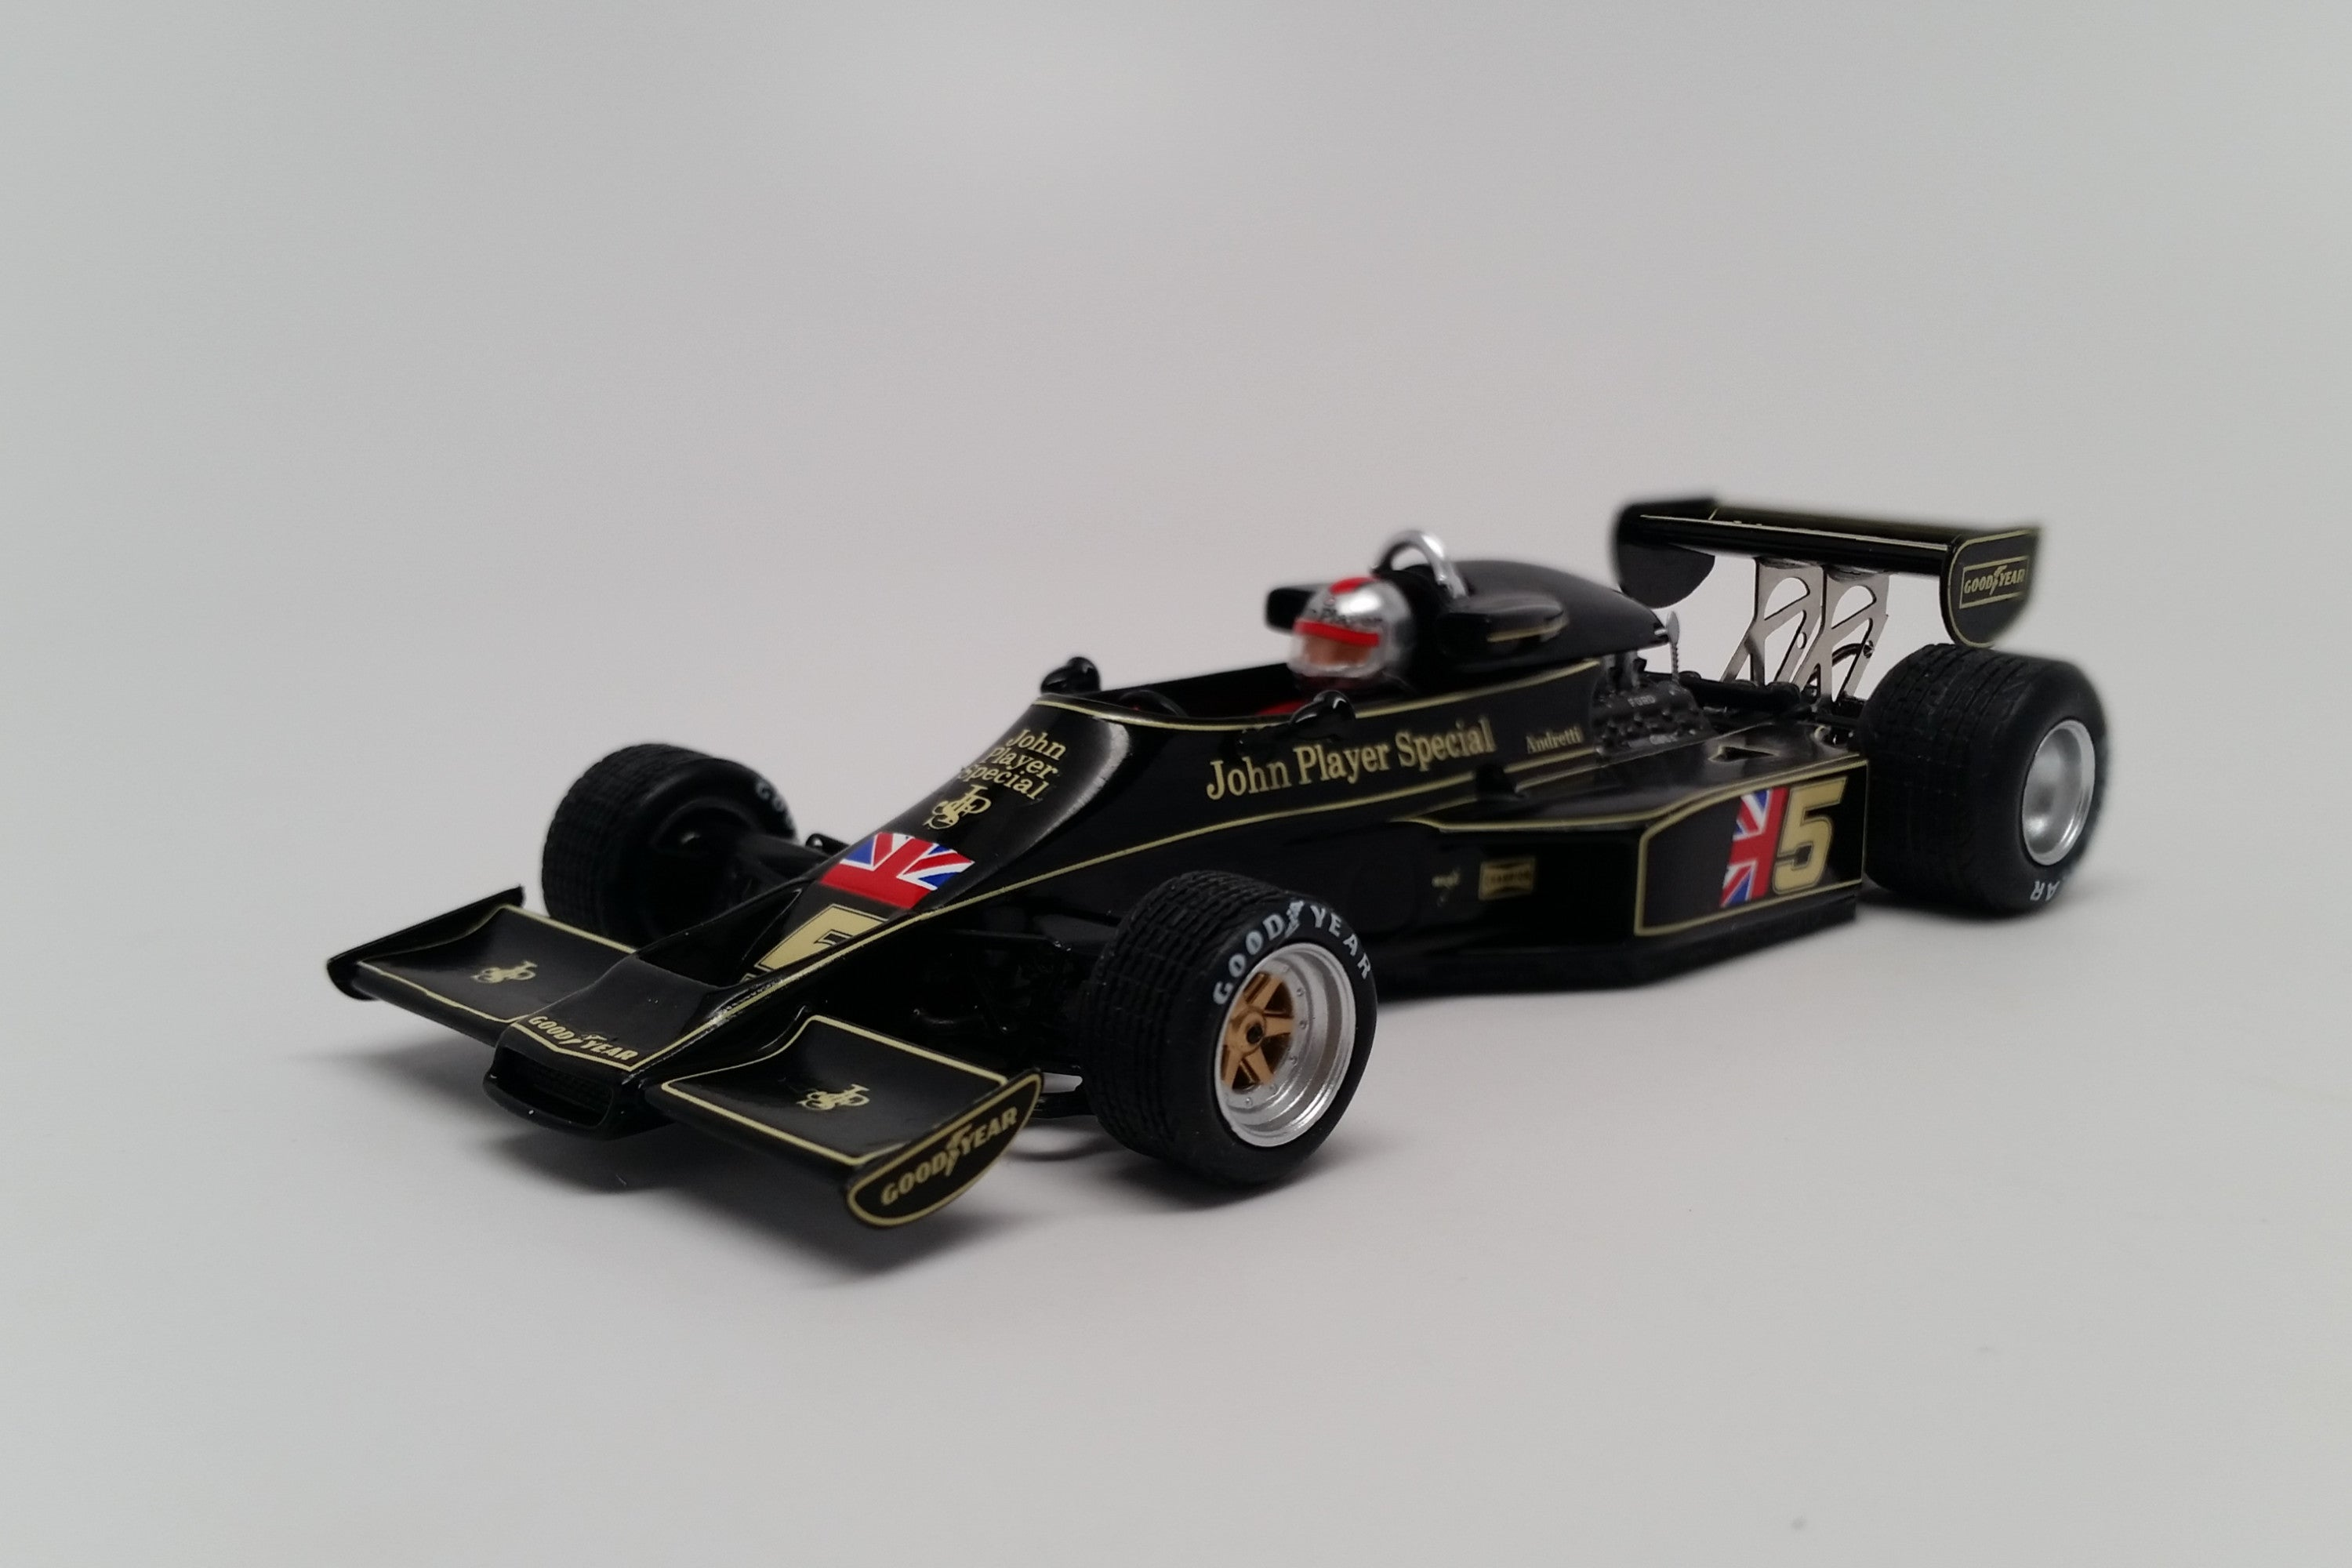 Lotus 77 (1976 Japanese GP) | 1:43 Scale Model Car by Spark | Front Quarter